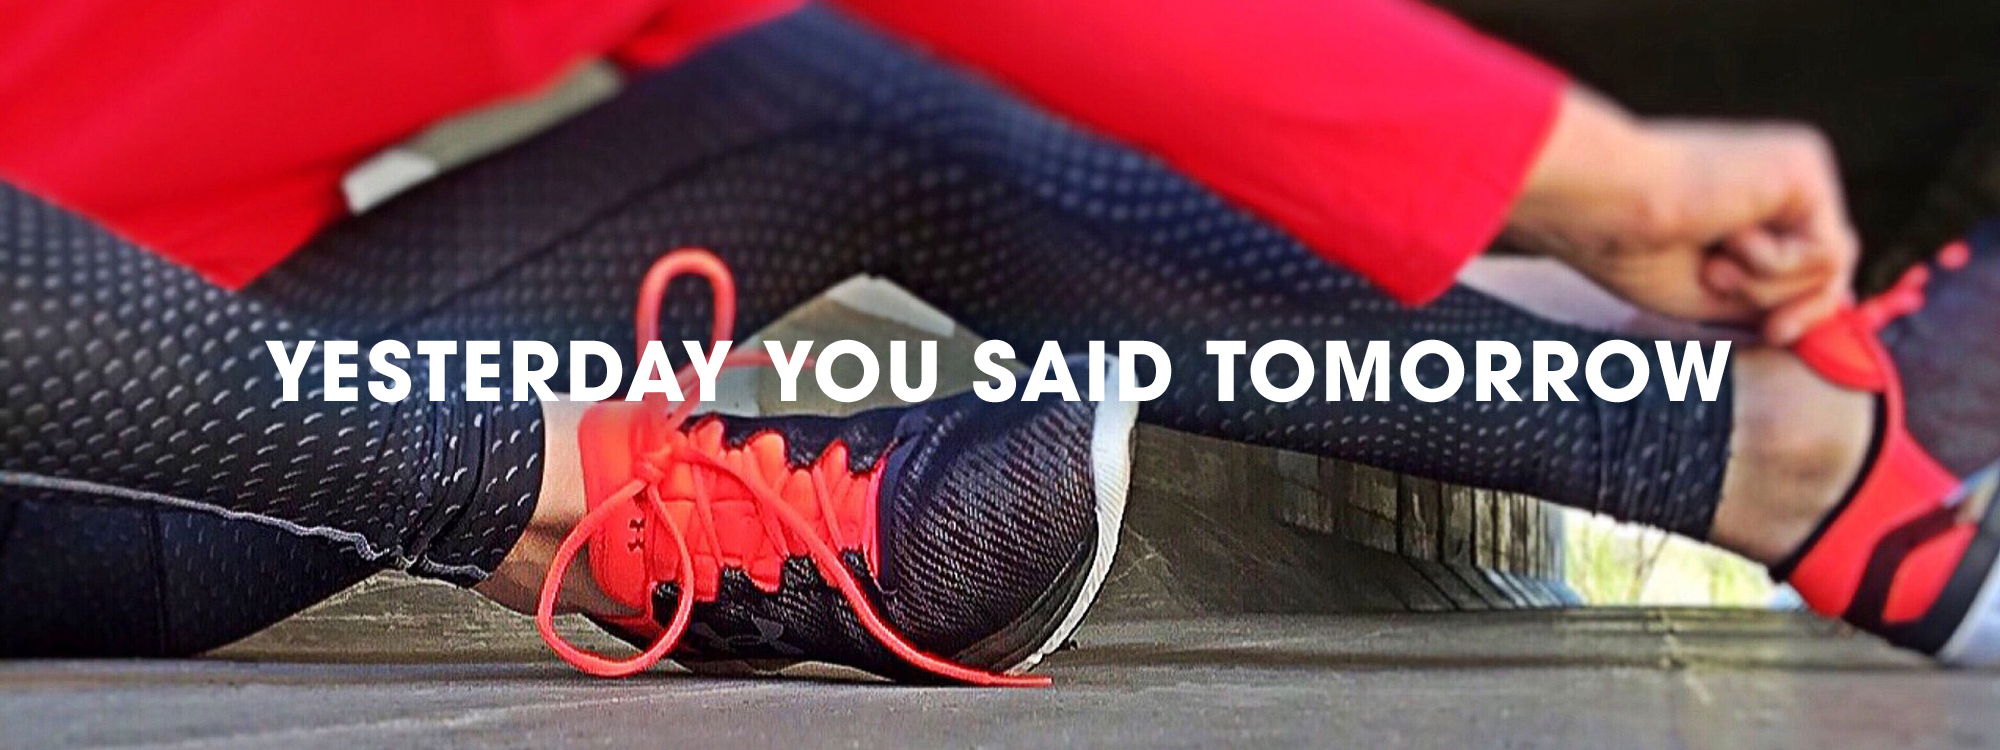 Yesterday You Said Tomorrow - Personal Training